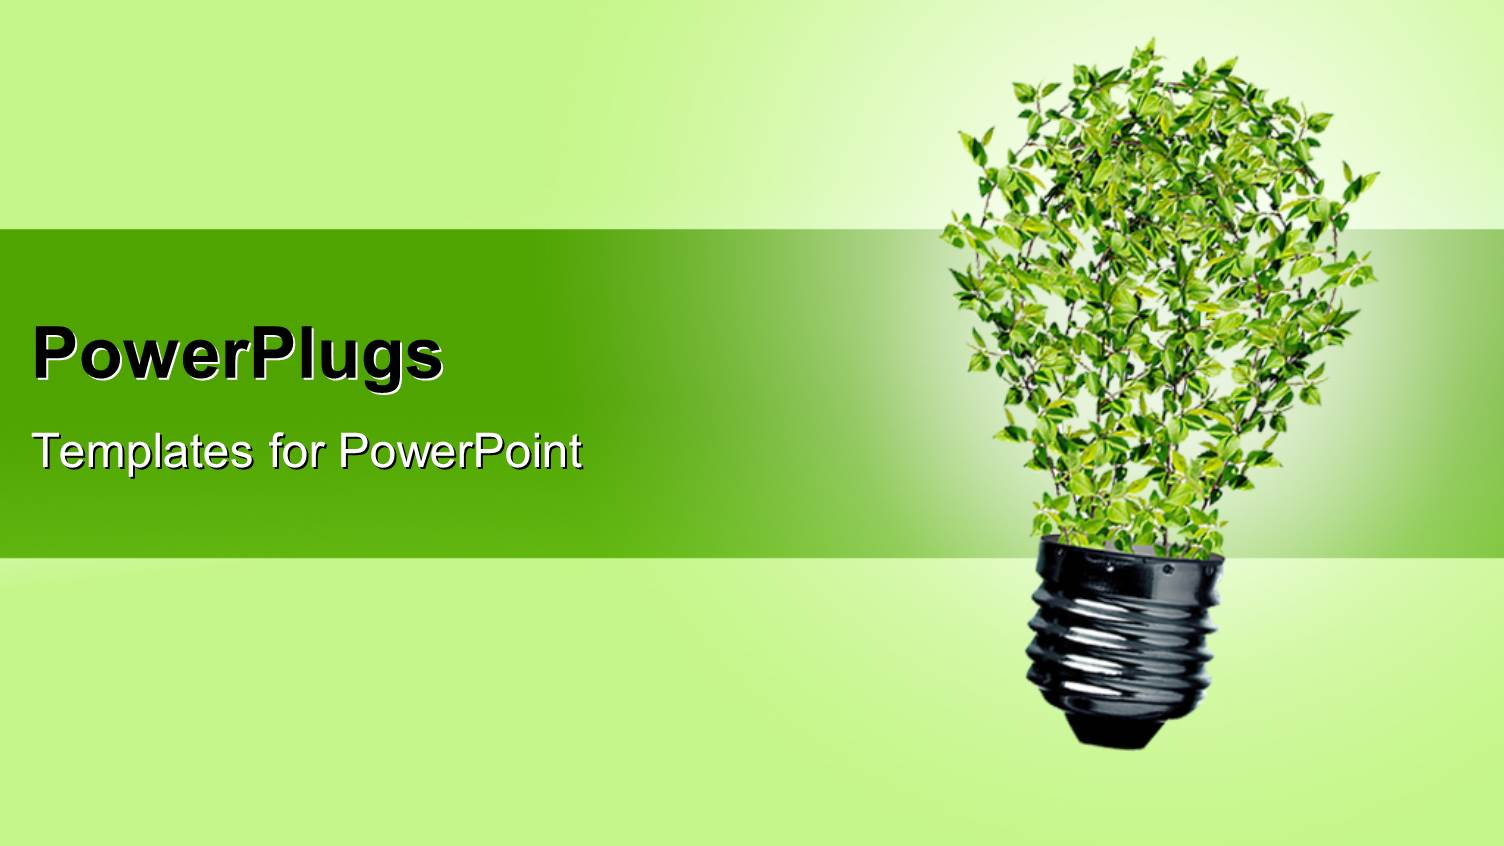 Powerpoint template green bulb with leaves as a symbol of energy powerpoint template displaying green bulb with leaves as a symbol of energy and nature depicting recycle toneelgroepblik Image collections